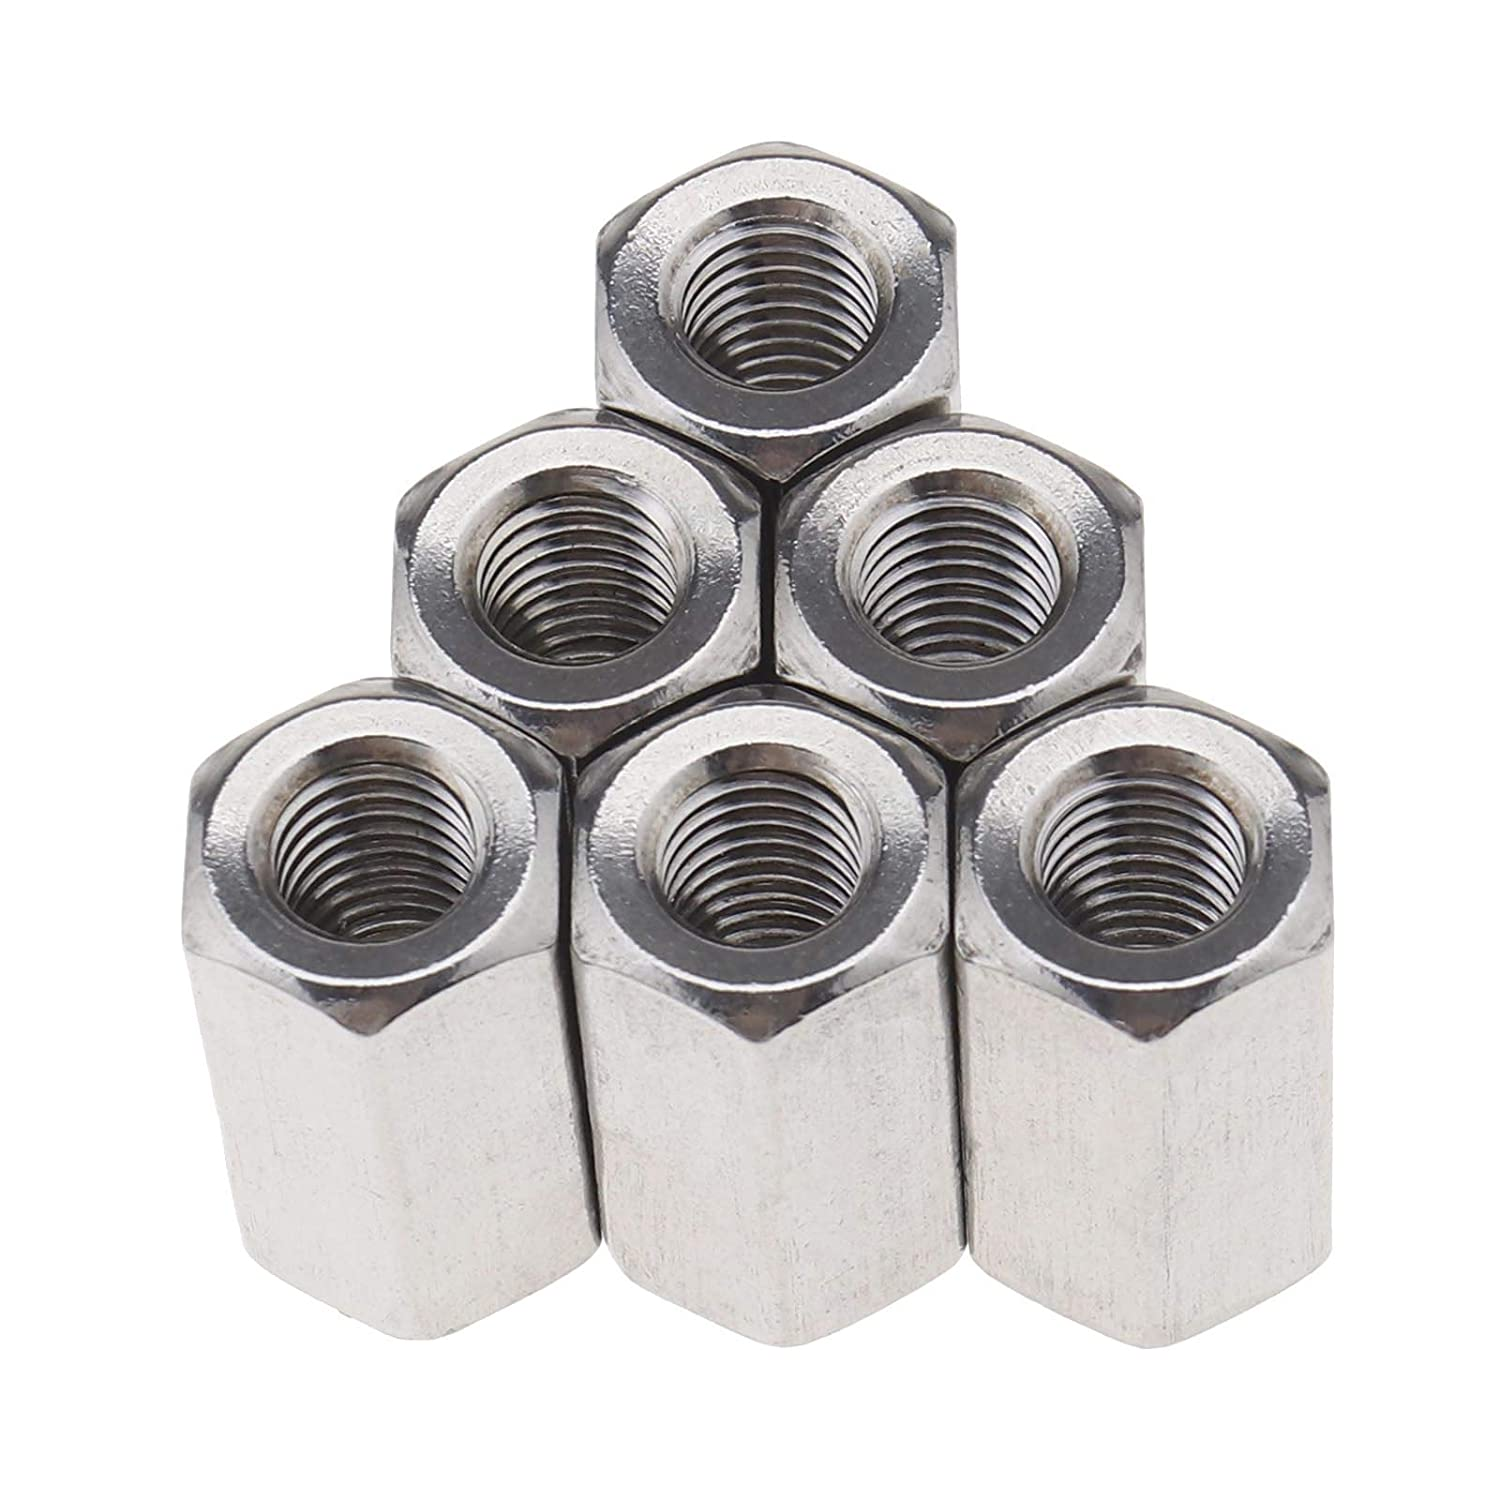 Thread Straight Extension Hexagon 304 Stainless Steel Hex Nut 10Pcs Studding Connector Set M10x17x30mm